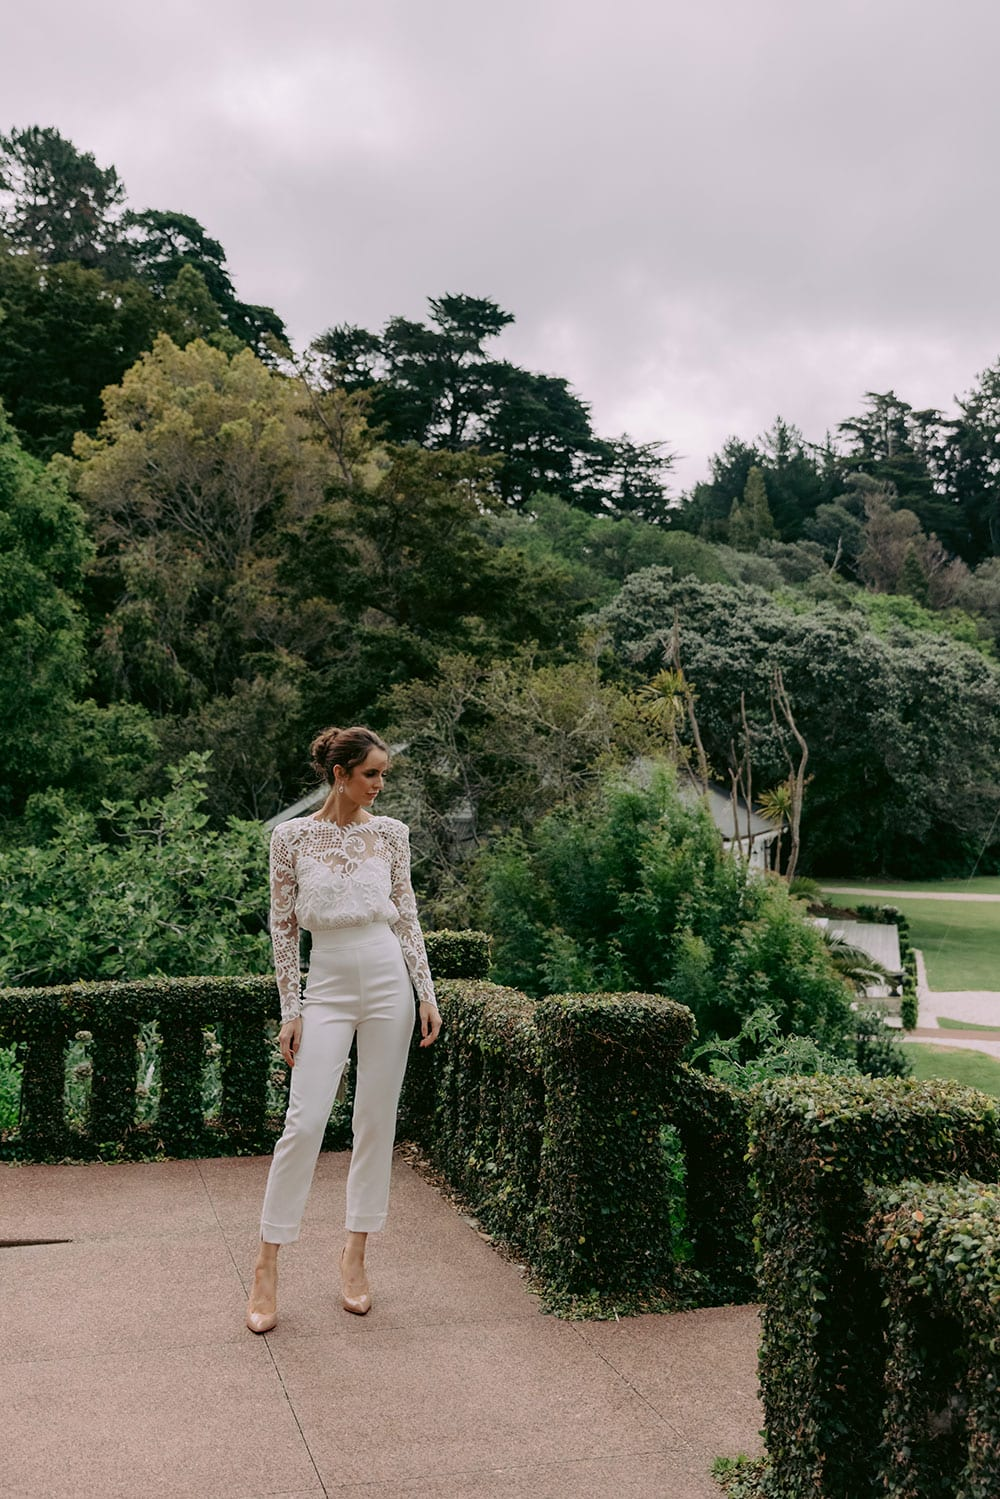 Aurora Wedding Trousers and Blouse from Vinka Design - Elegantly tailored trouser combined with a beautiful lace blouse for the Modern Bride. The blouse features a high neck and low back, with in-built camisole, fitted sleeves, & pearl buttons. Model wearing Trousers and Blouse in Clevedon Gardens, Auckland.